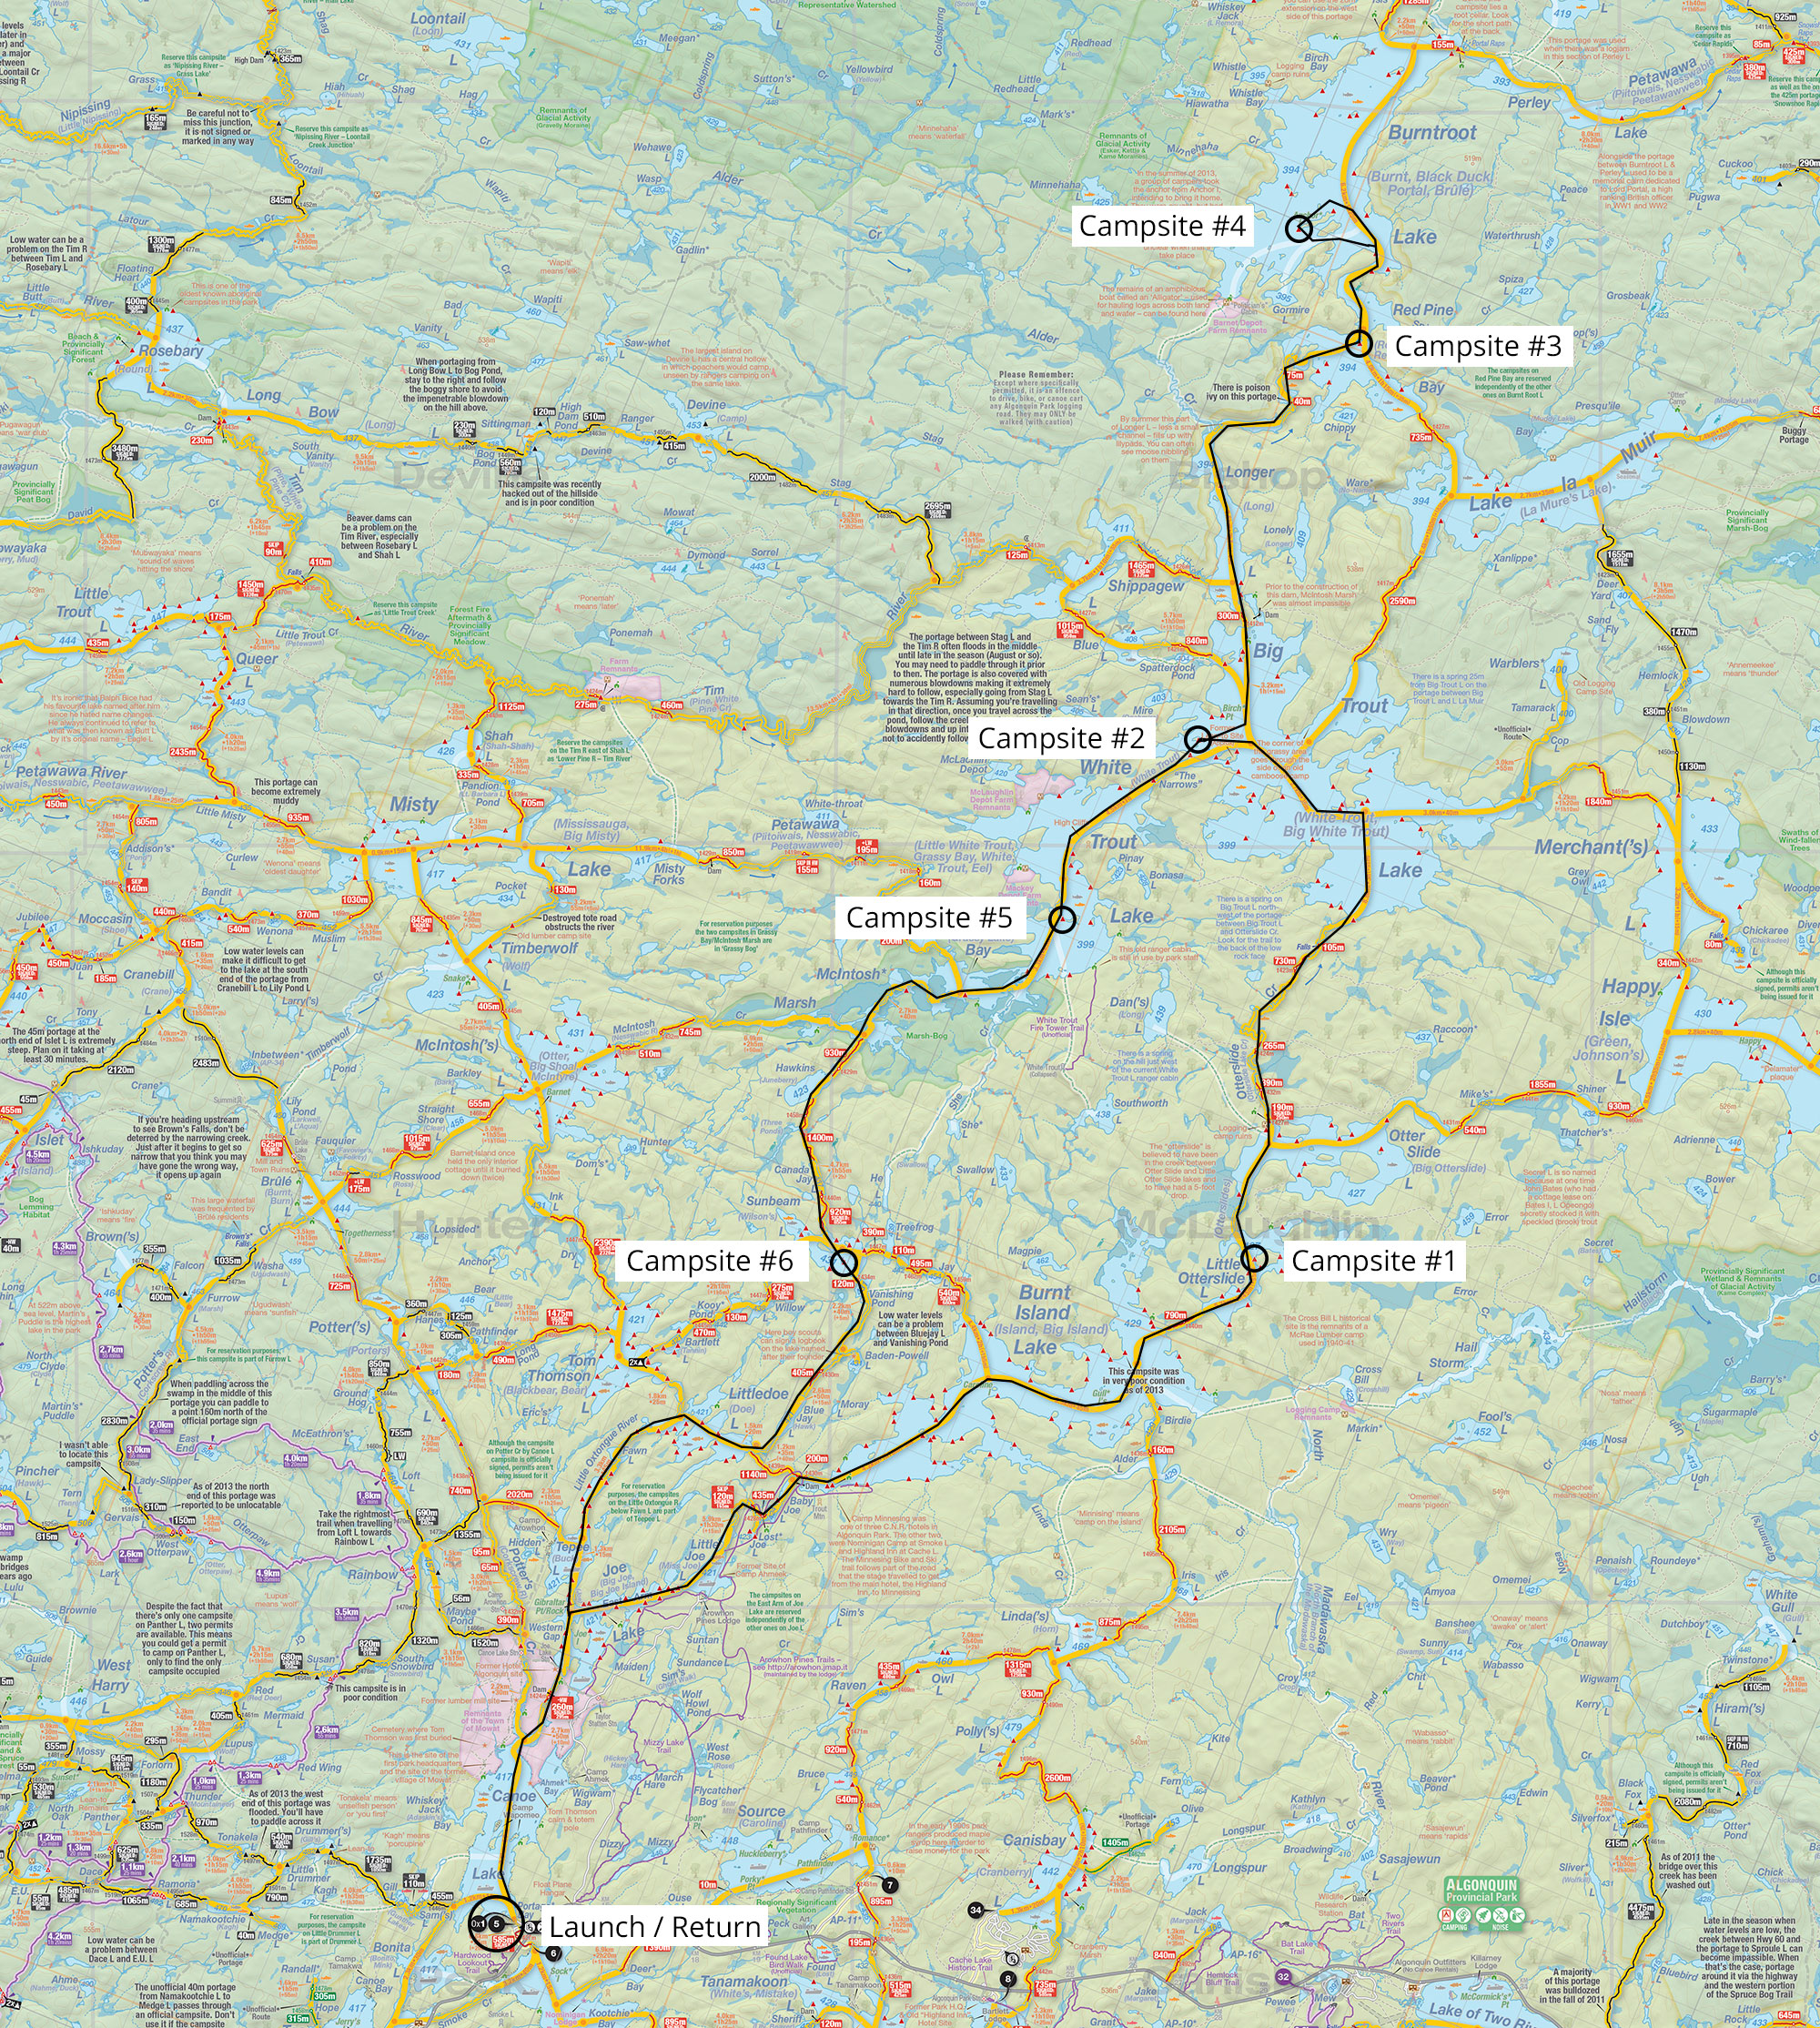 Map of trip details and campsites for trip of six islands